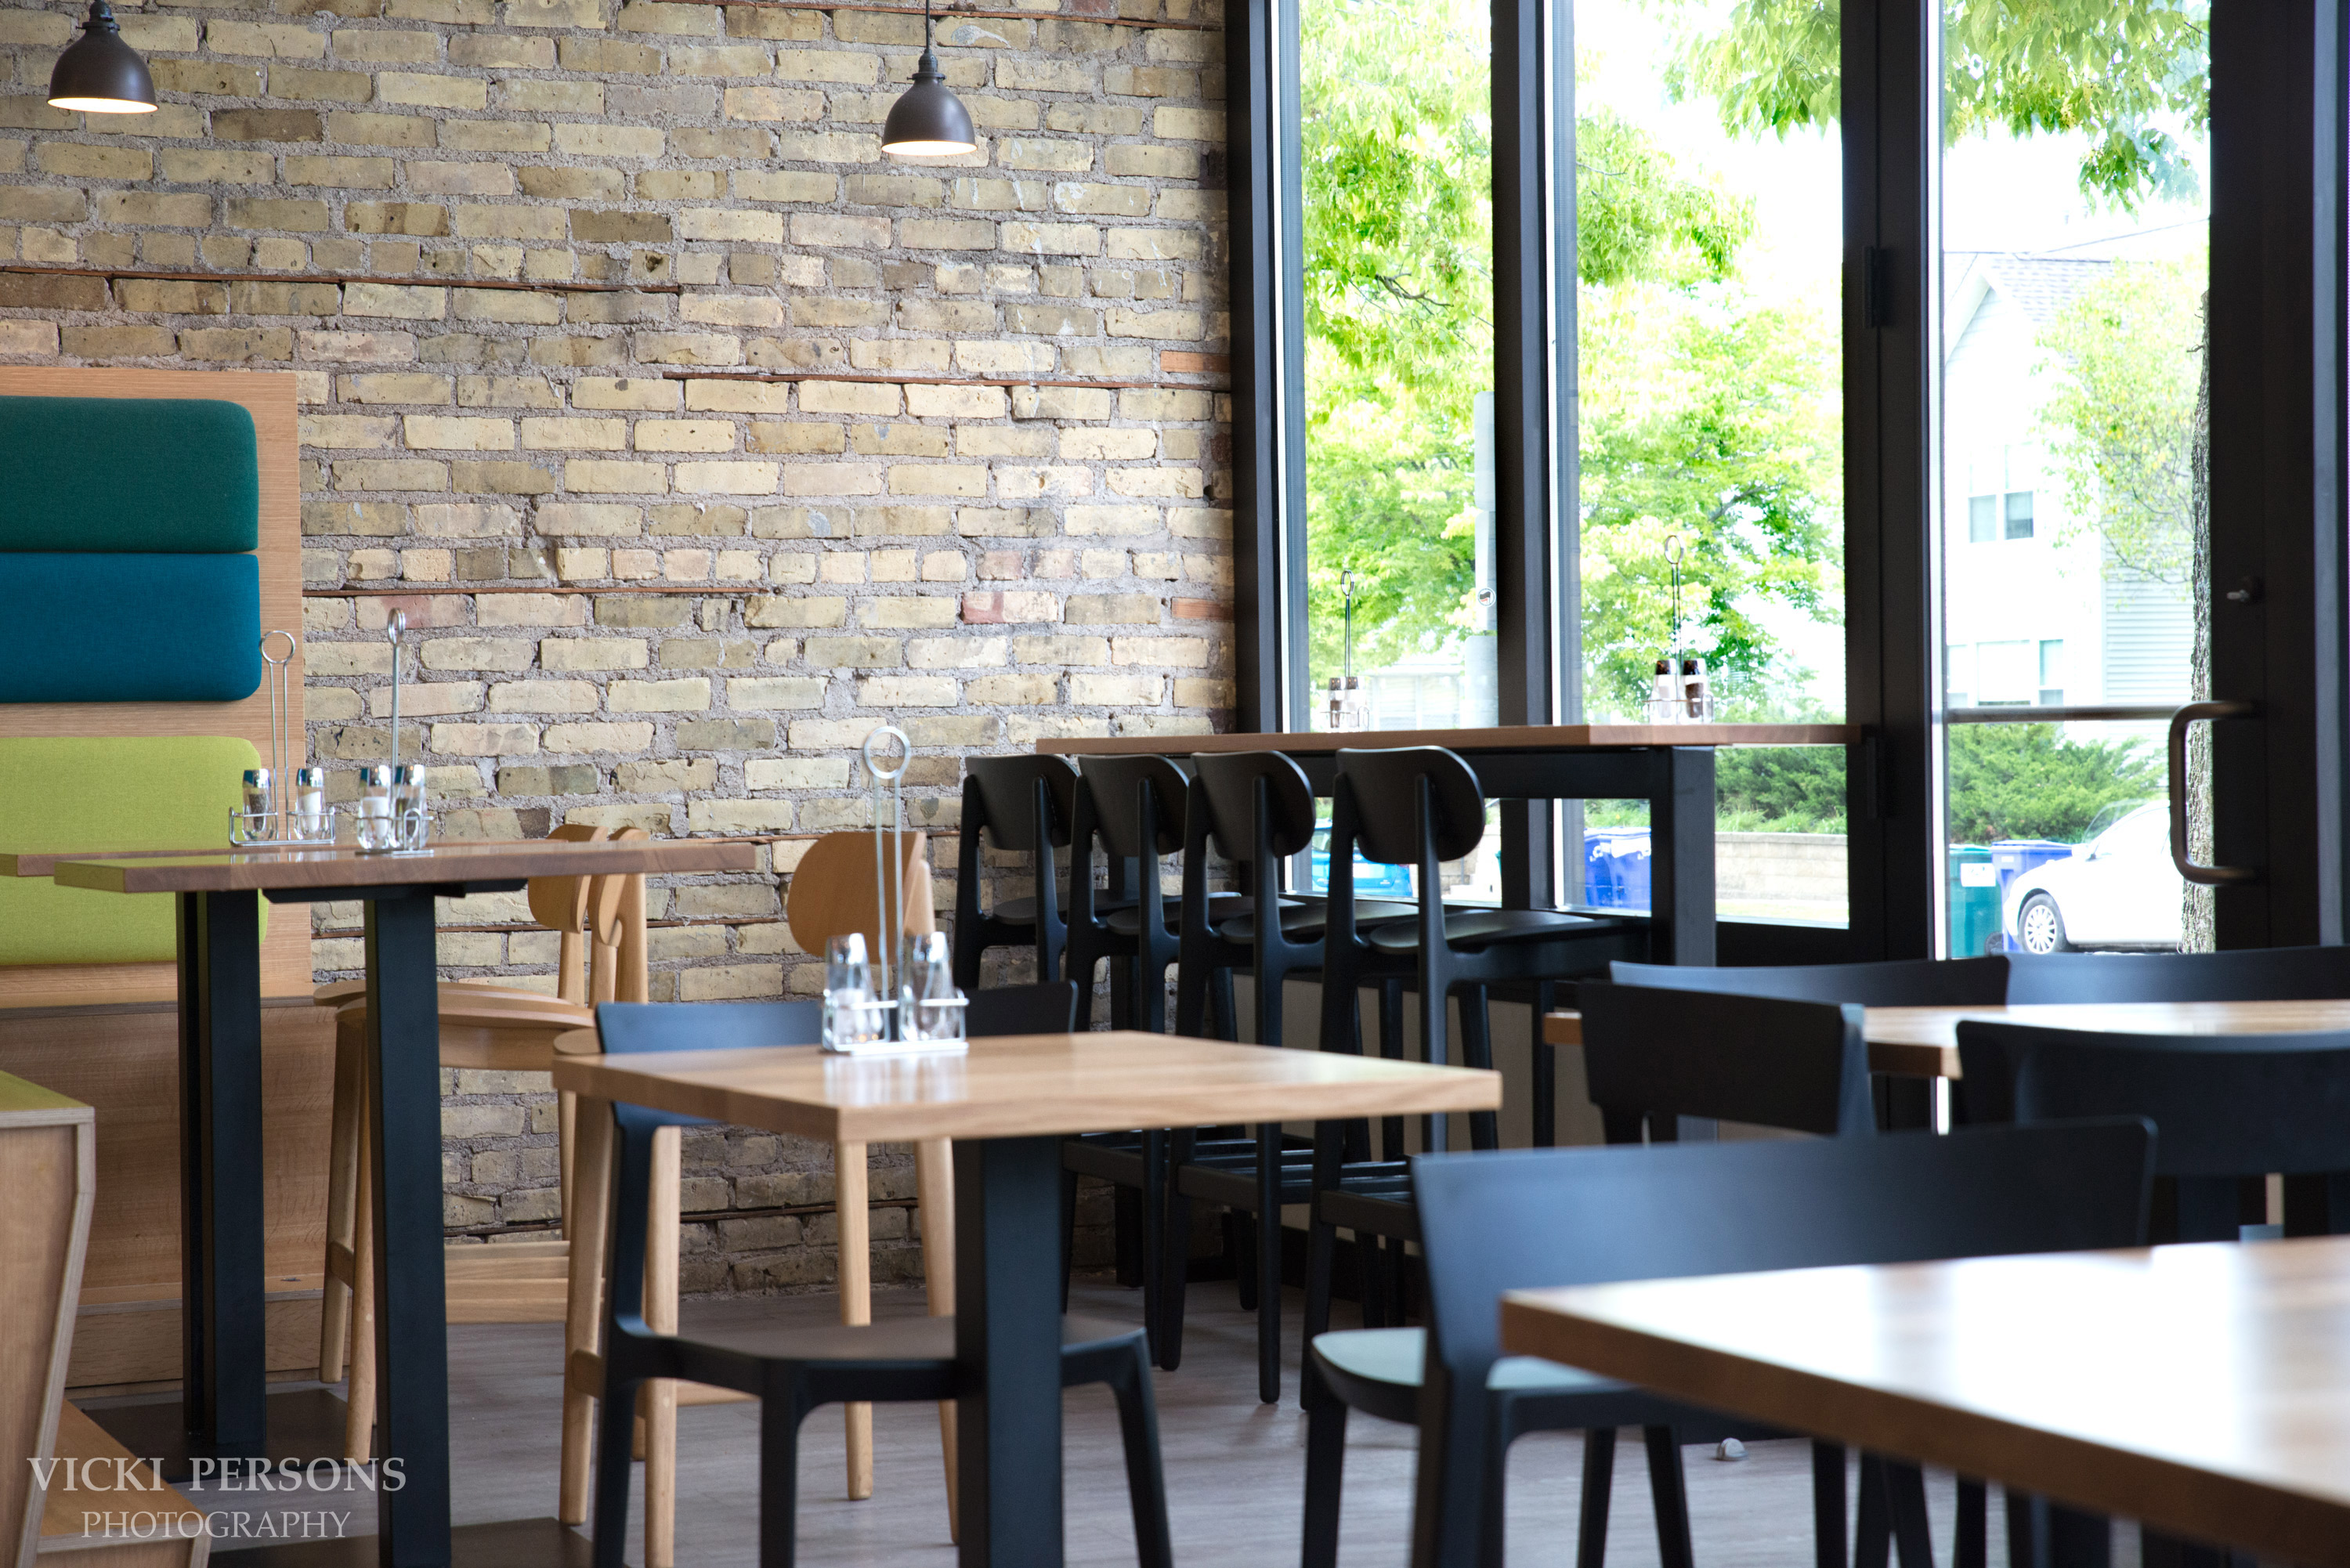 Sit in Style at J. Selby's Eatery